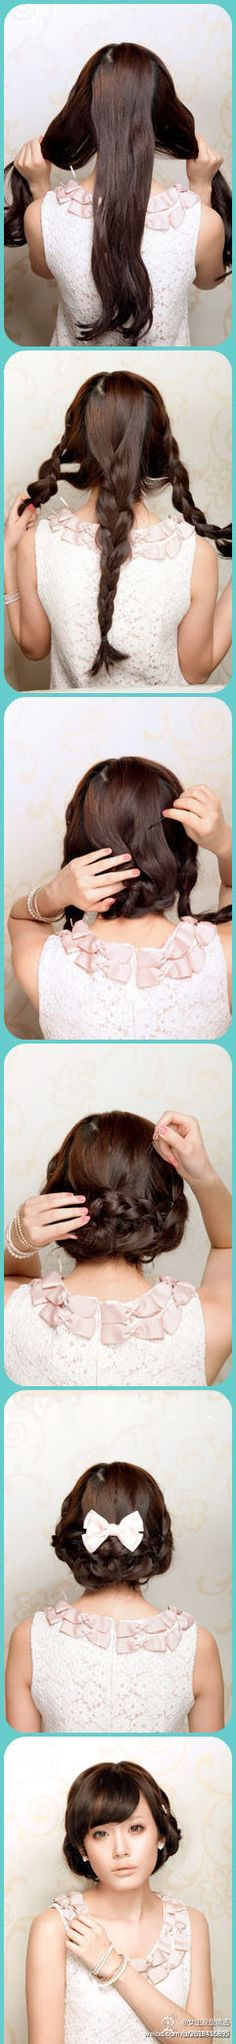 simple updo #DIY